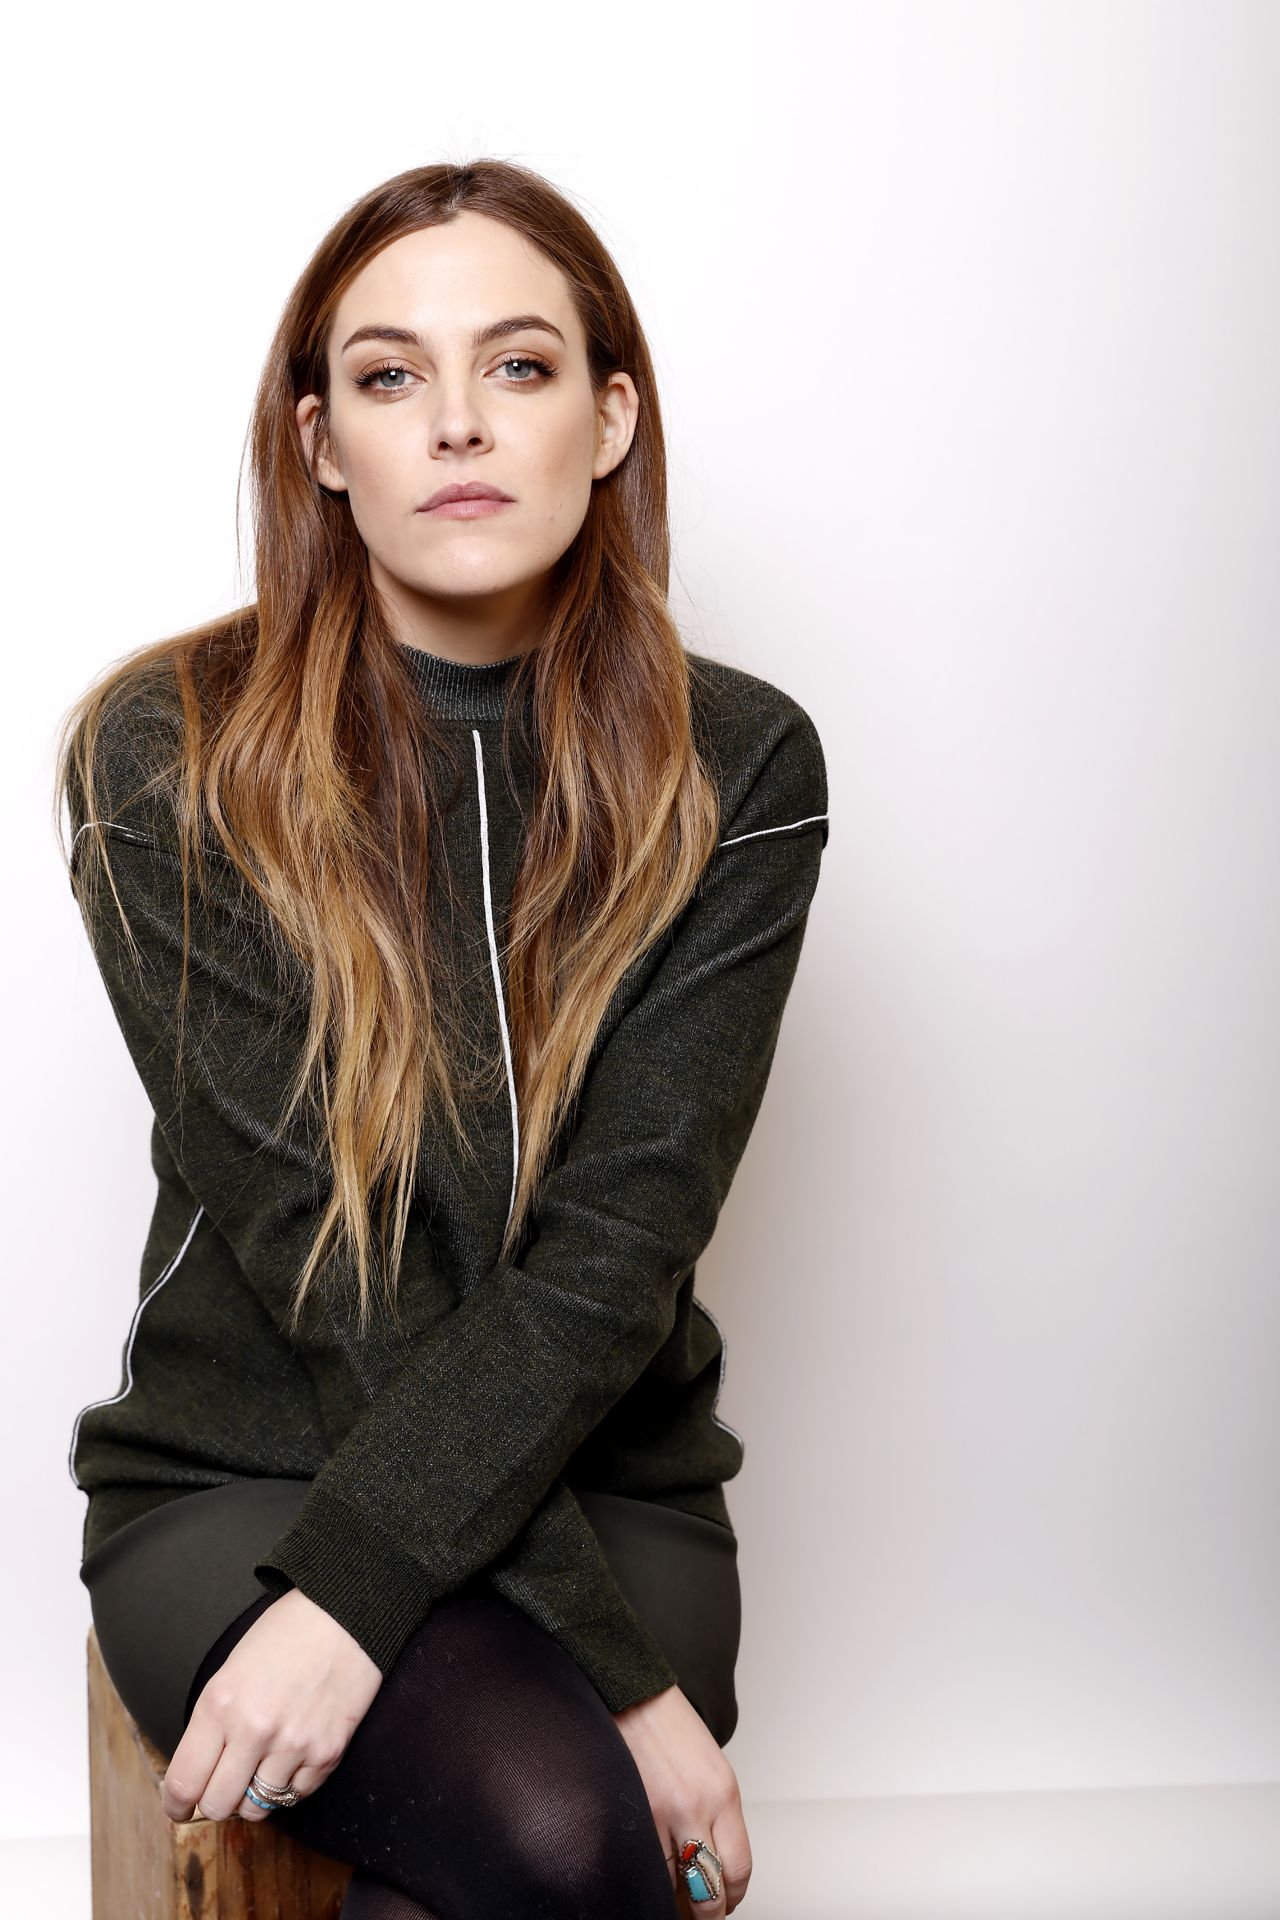 1280x1920 - Riley Keough Wallpapers 30